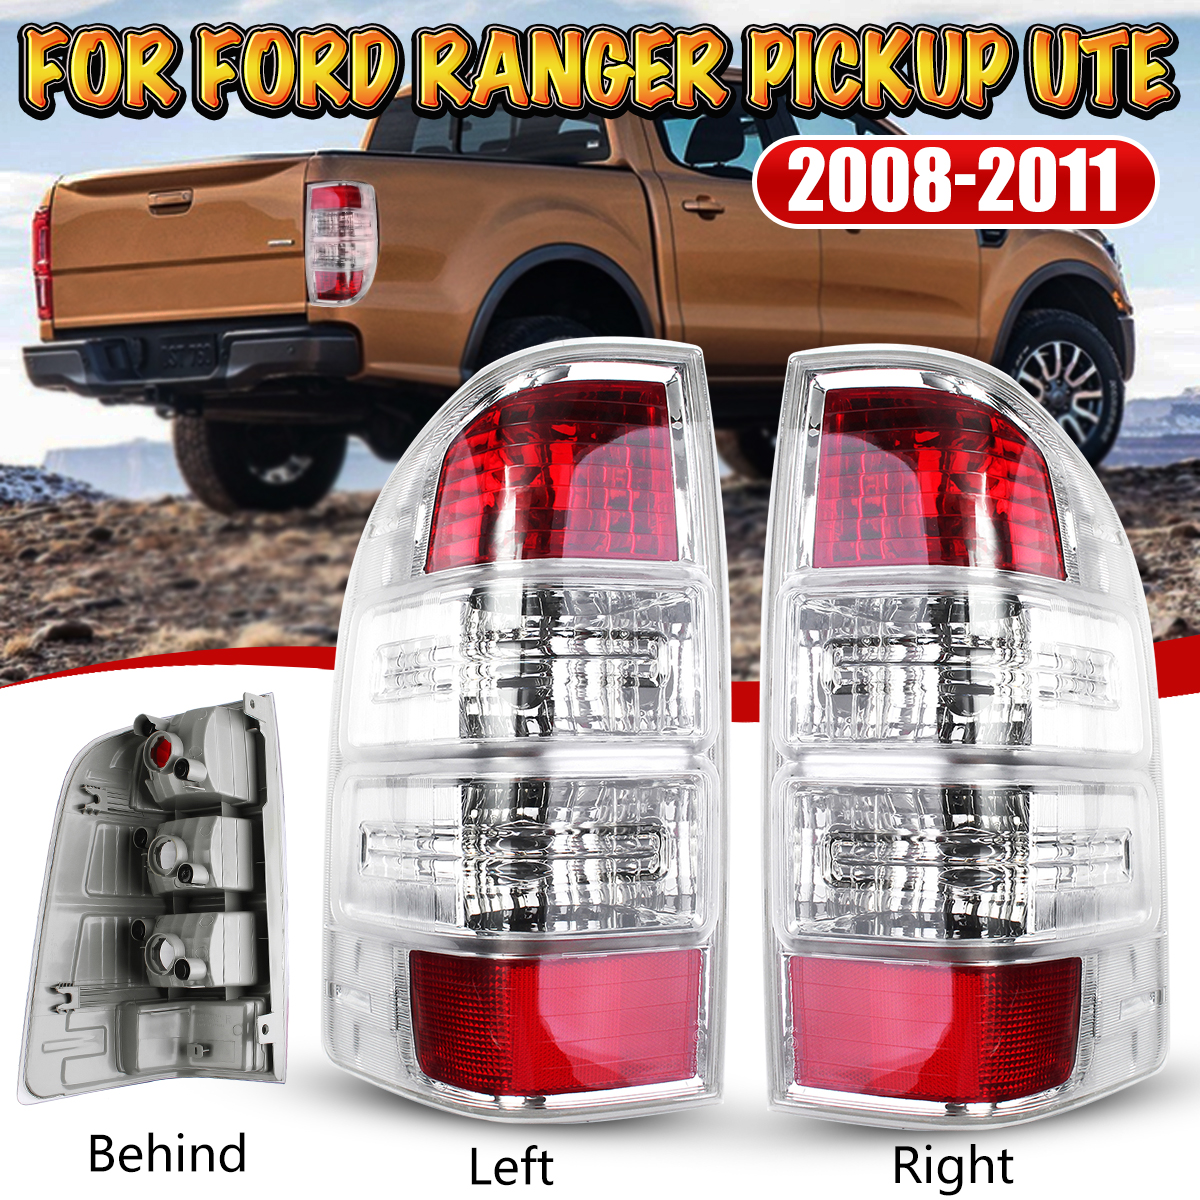 Car Left/Right Rear Tail Light Assembly Lamp with No Bulb for Ford Ranger Pickup Ute 2008-2011